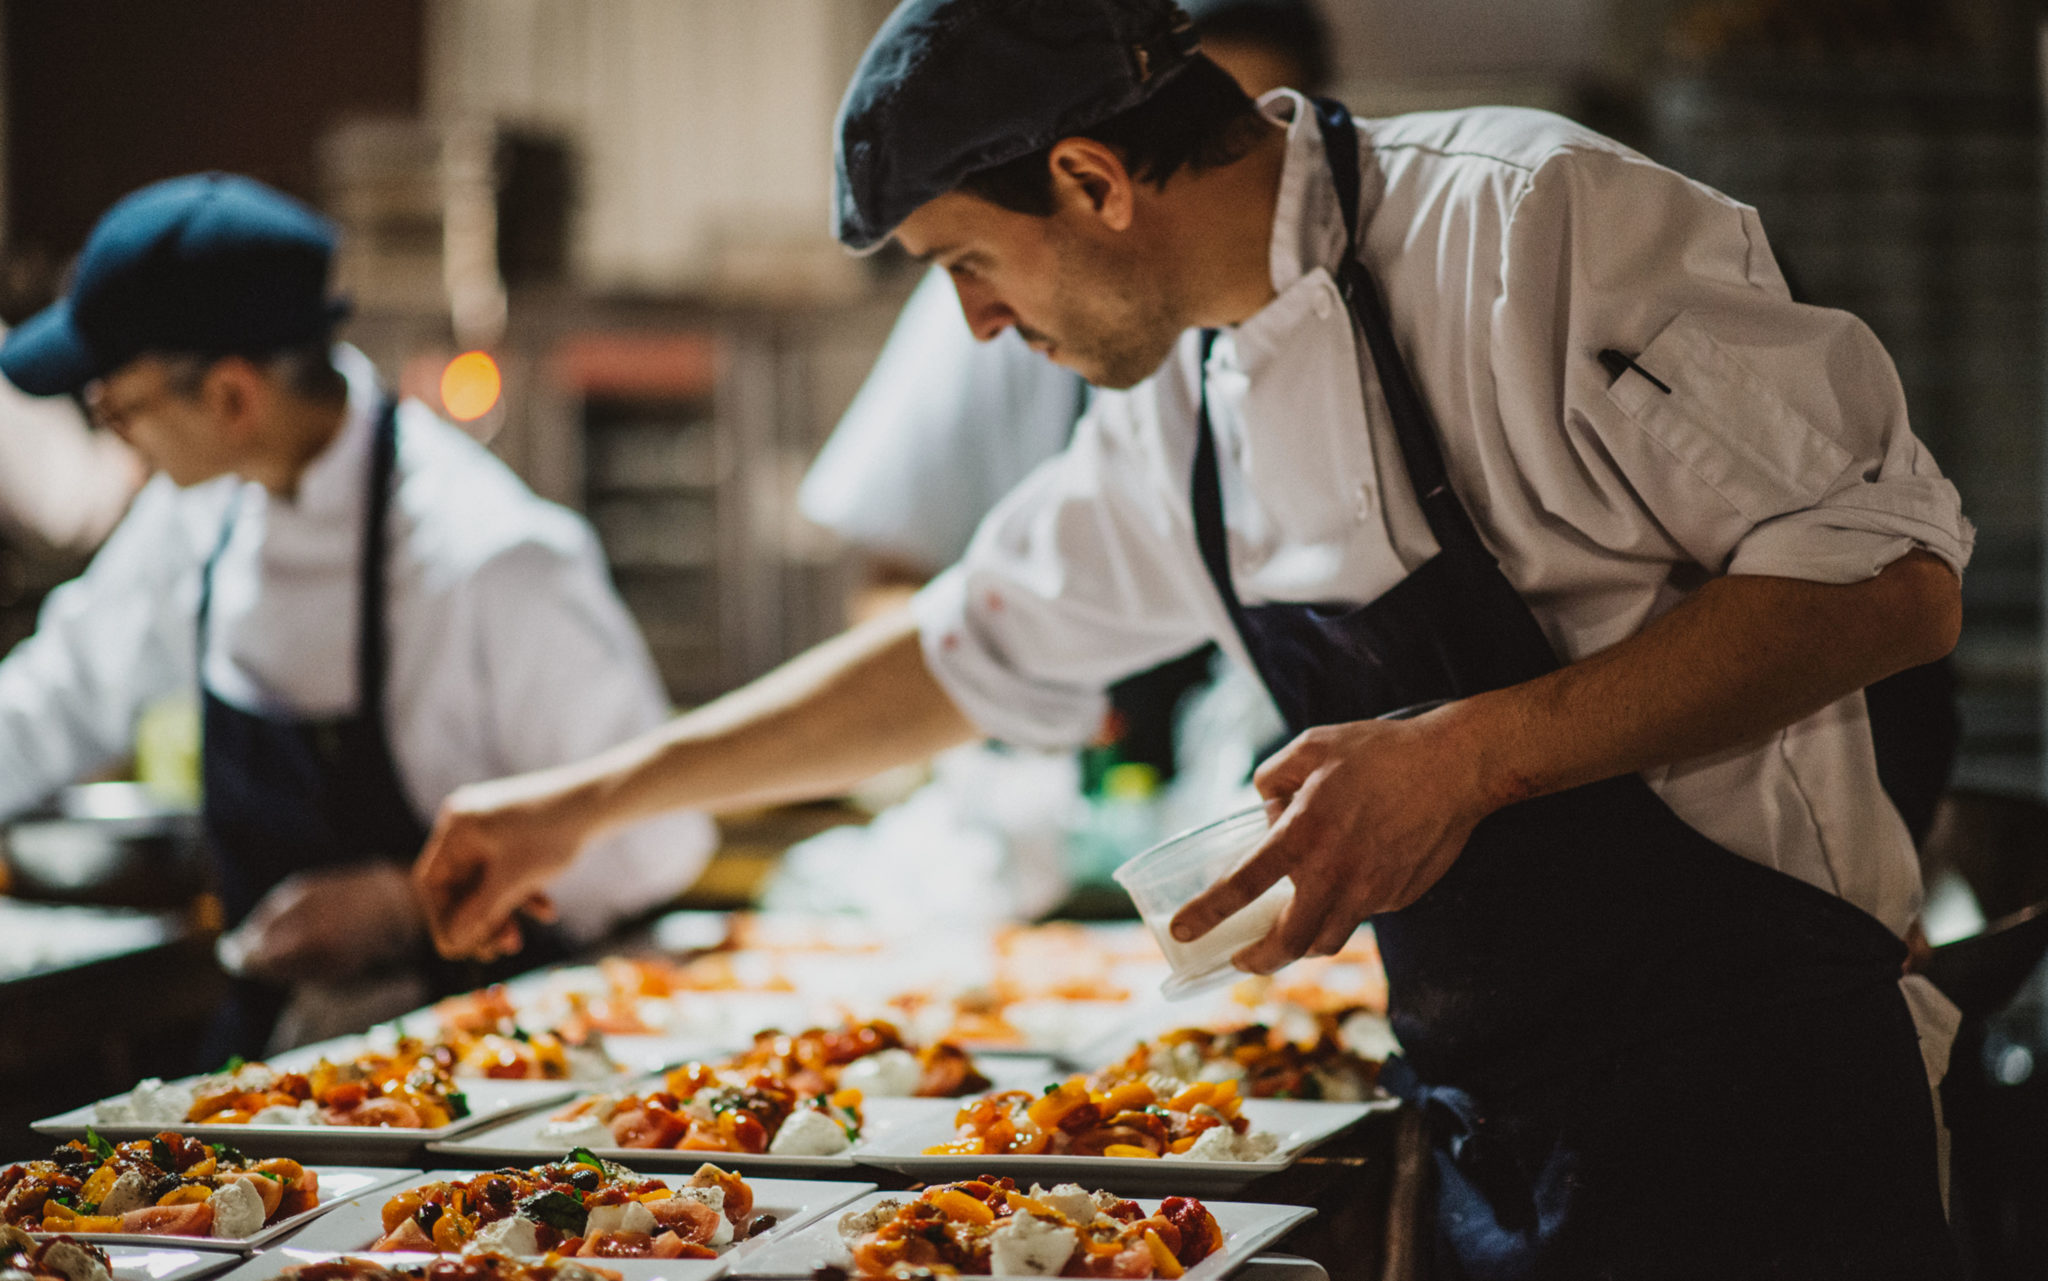 A sous-chef adding garnishes to dishes at Ristorante Beatrice.